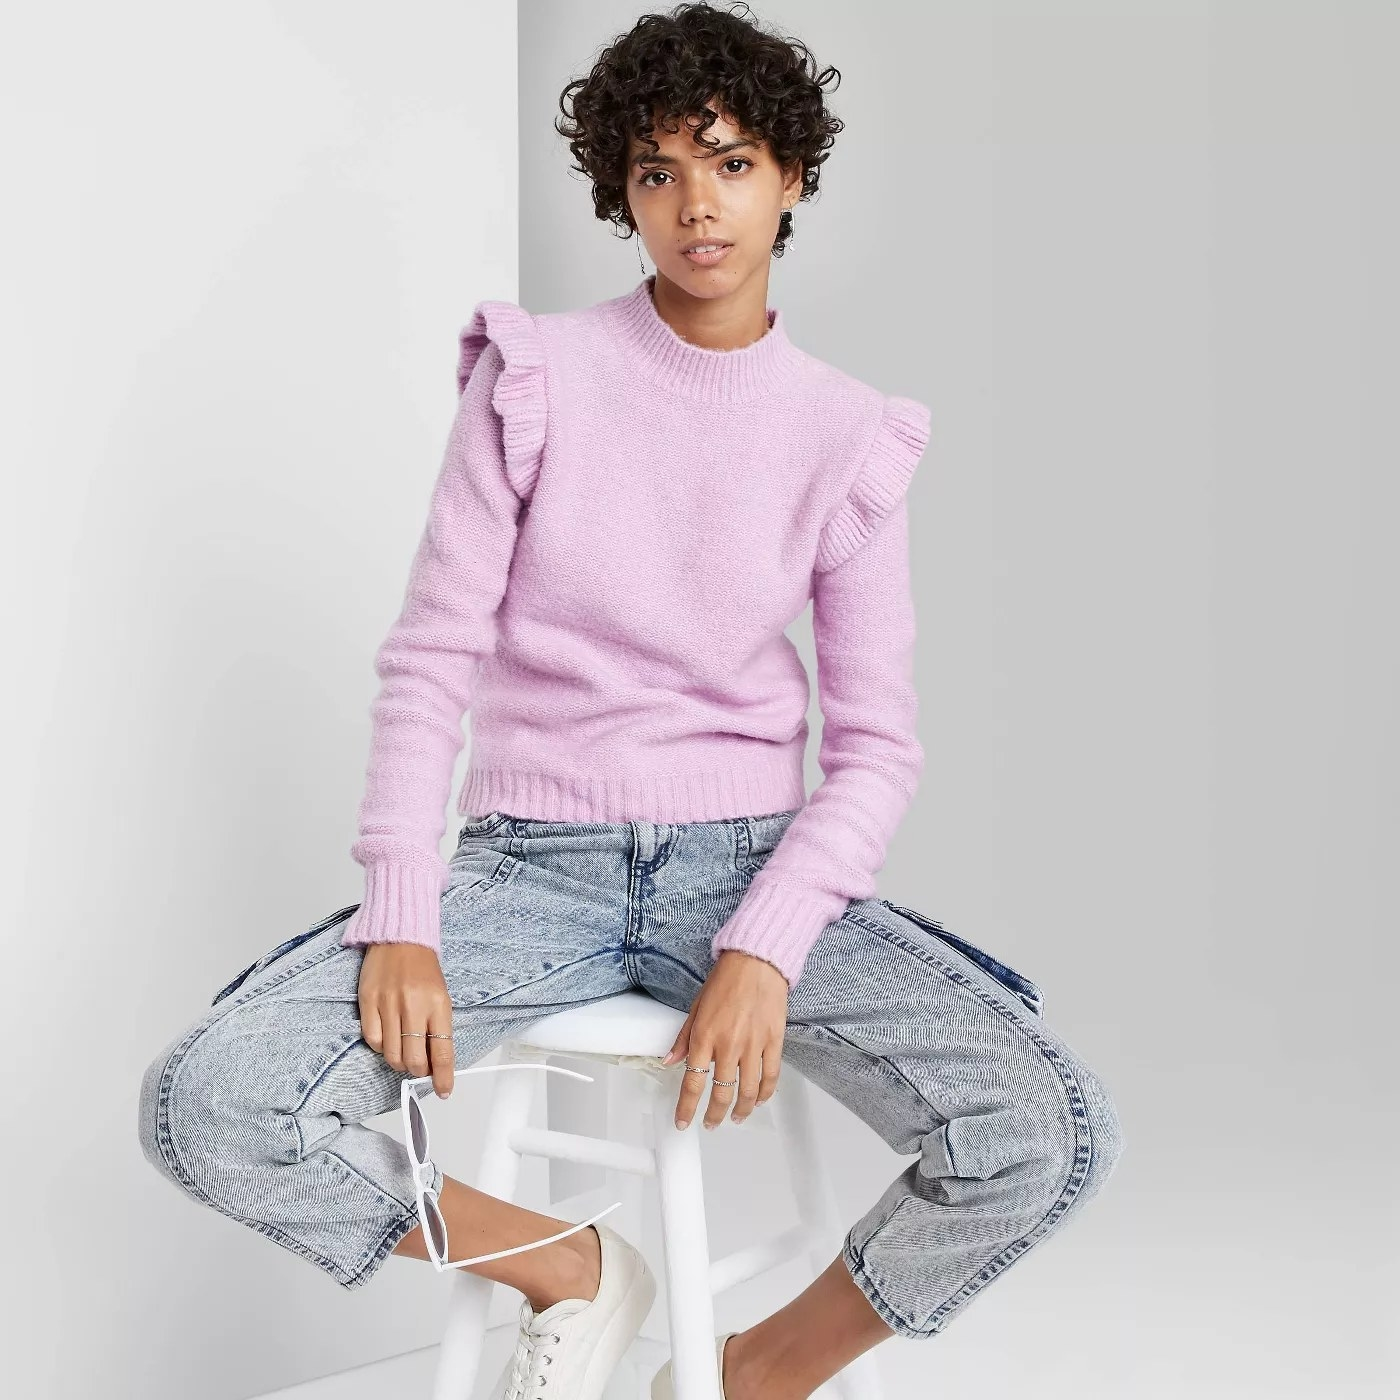 A lavender ruffle sweater paired with jeans and sneakers.